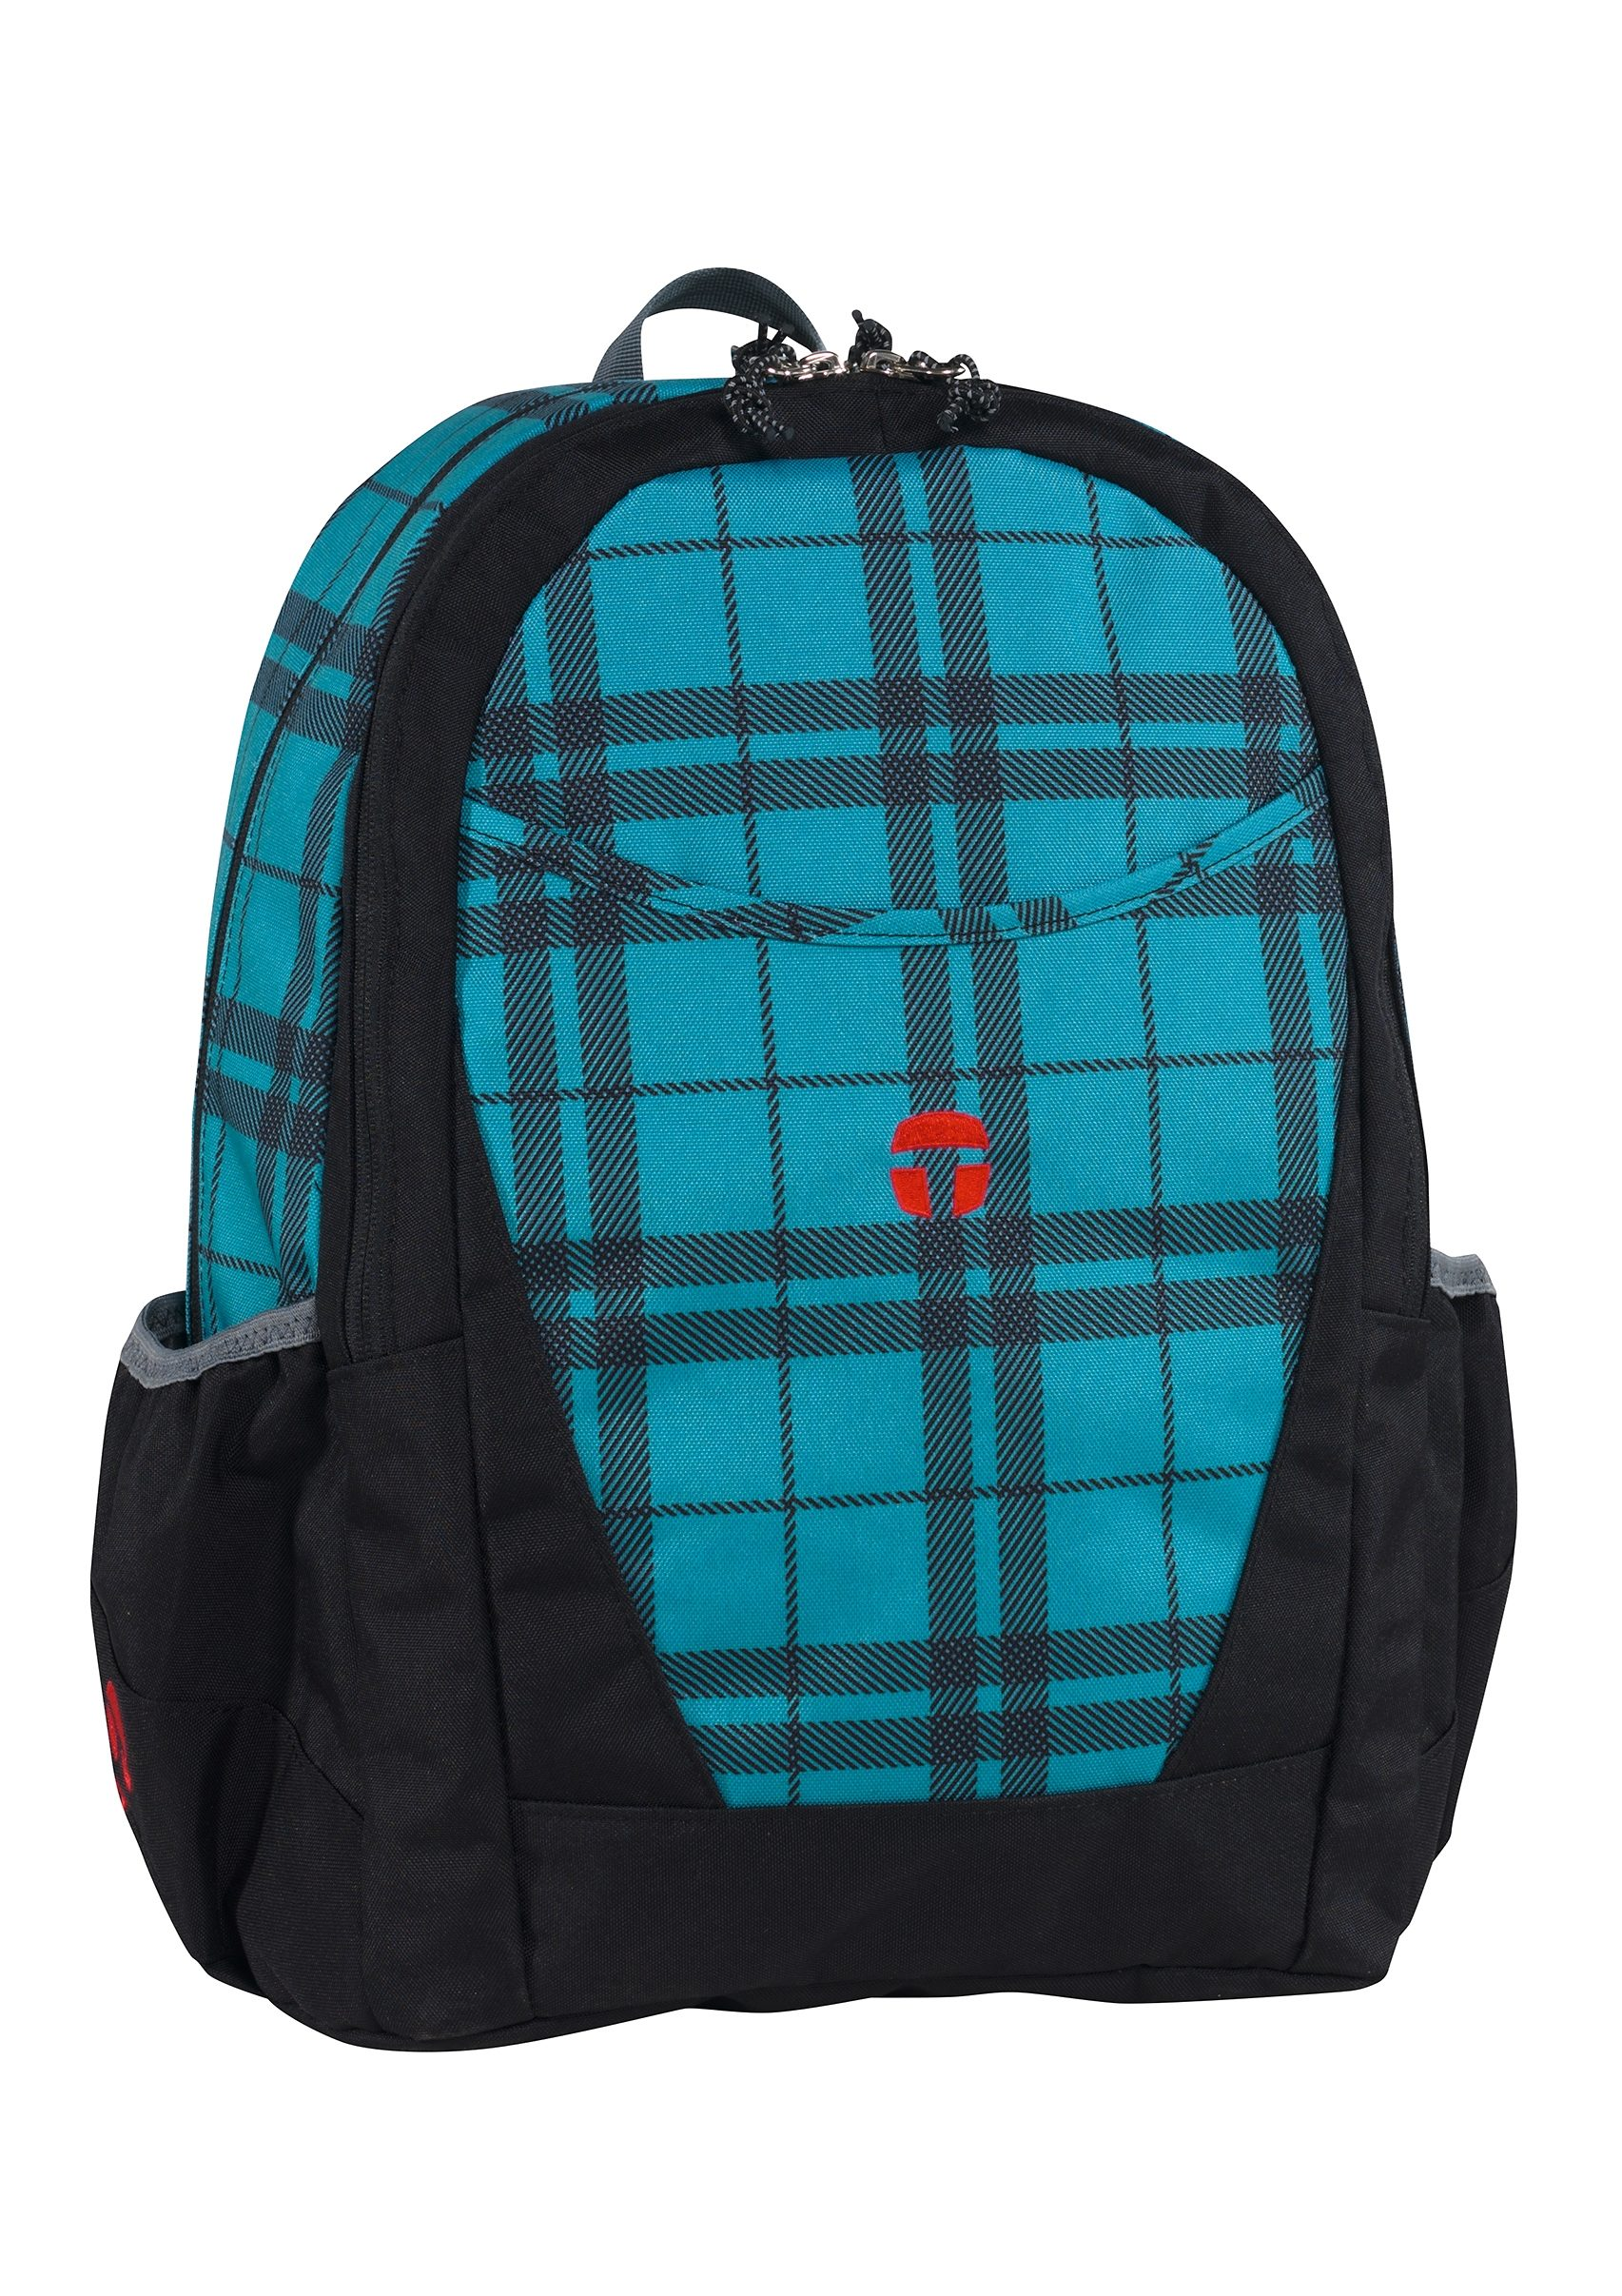 TAKE IT EASY® Rucksack, »Paris Scotch Turquoise«